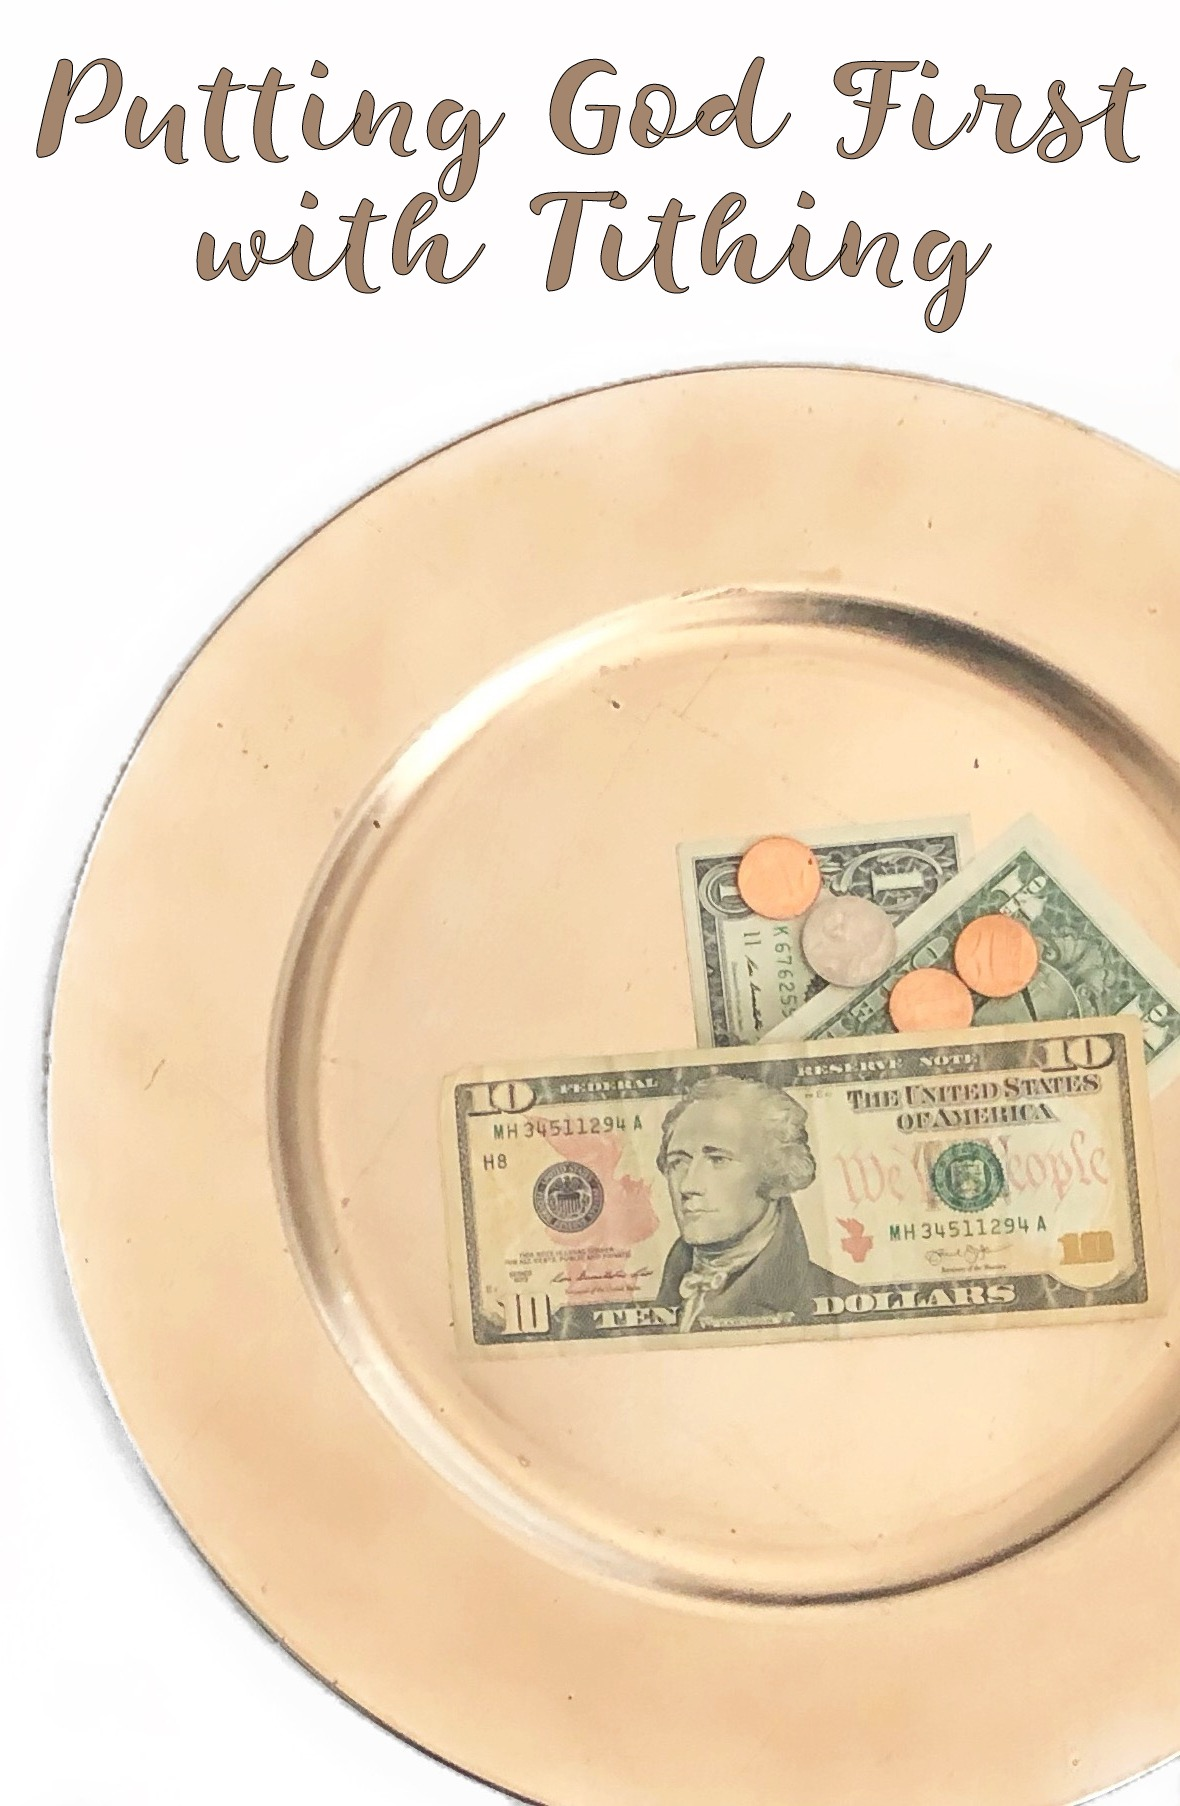 Putting God first by tithing - in due time blog